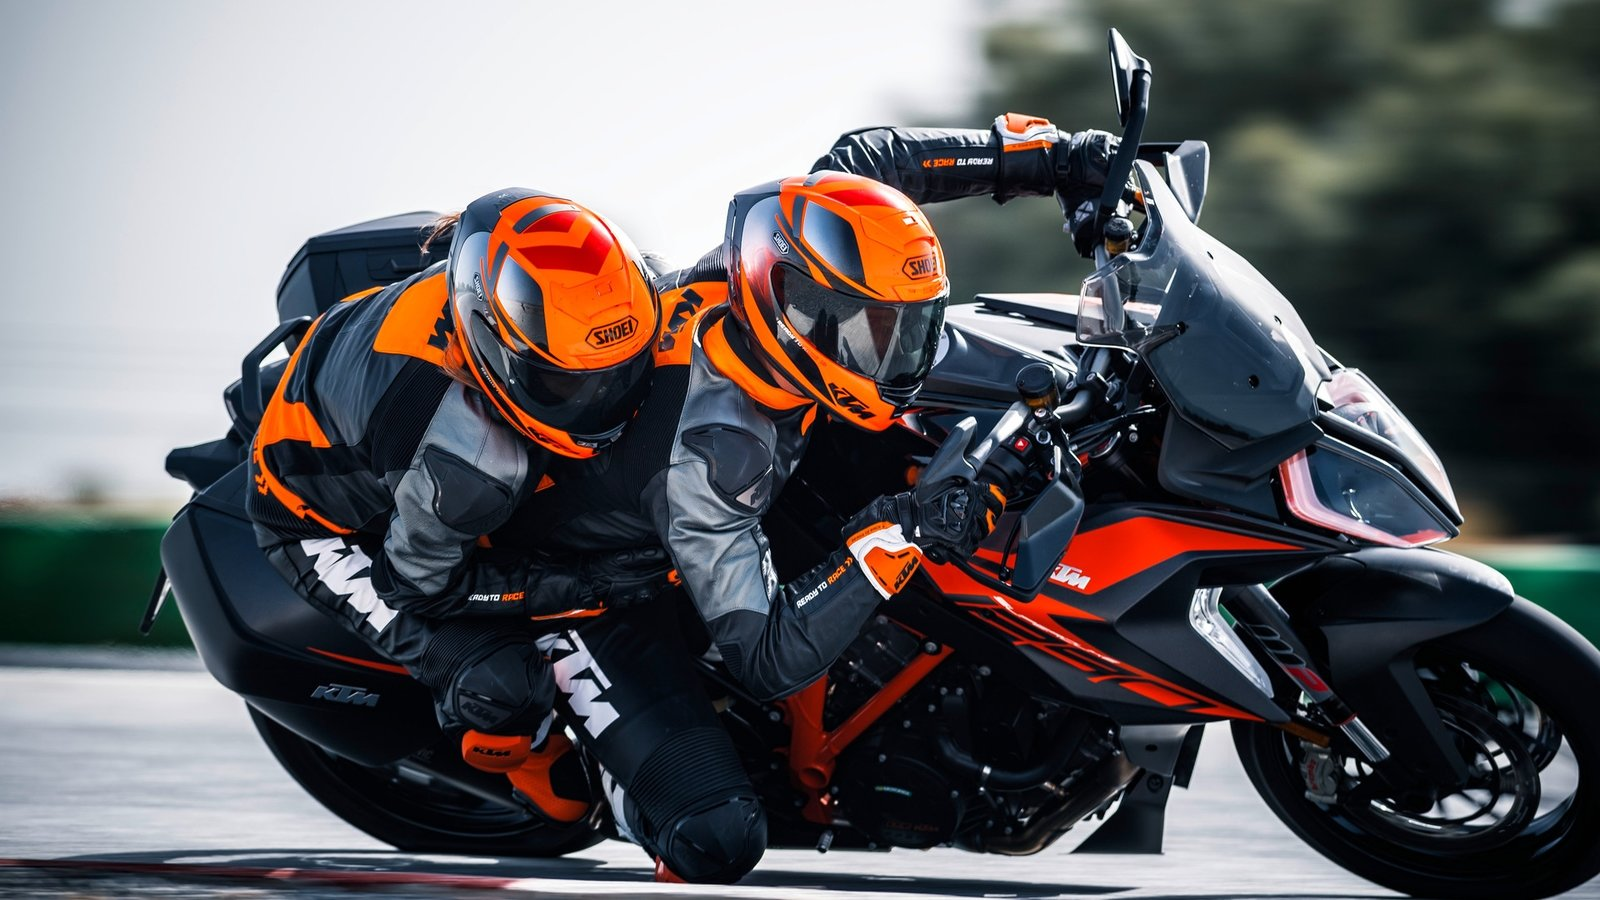 List of fastest production motorcycles - Wikipedia